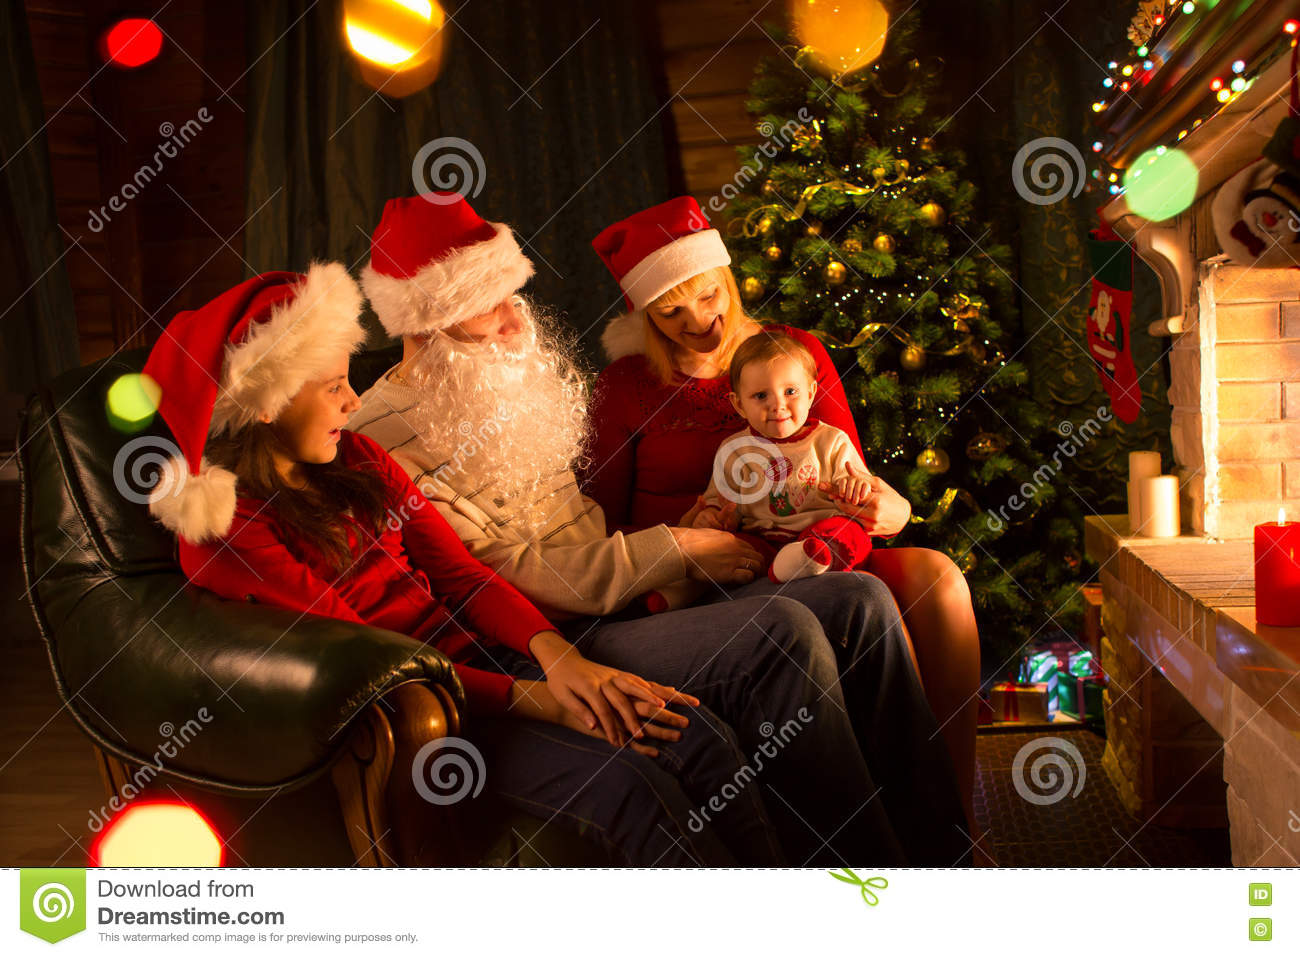 Family portrait in home holiday living room at Christmas tree